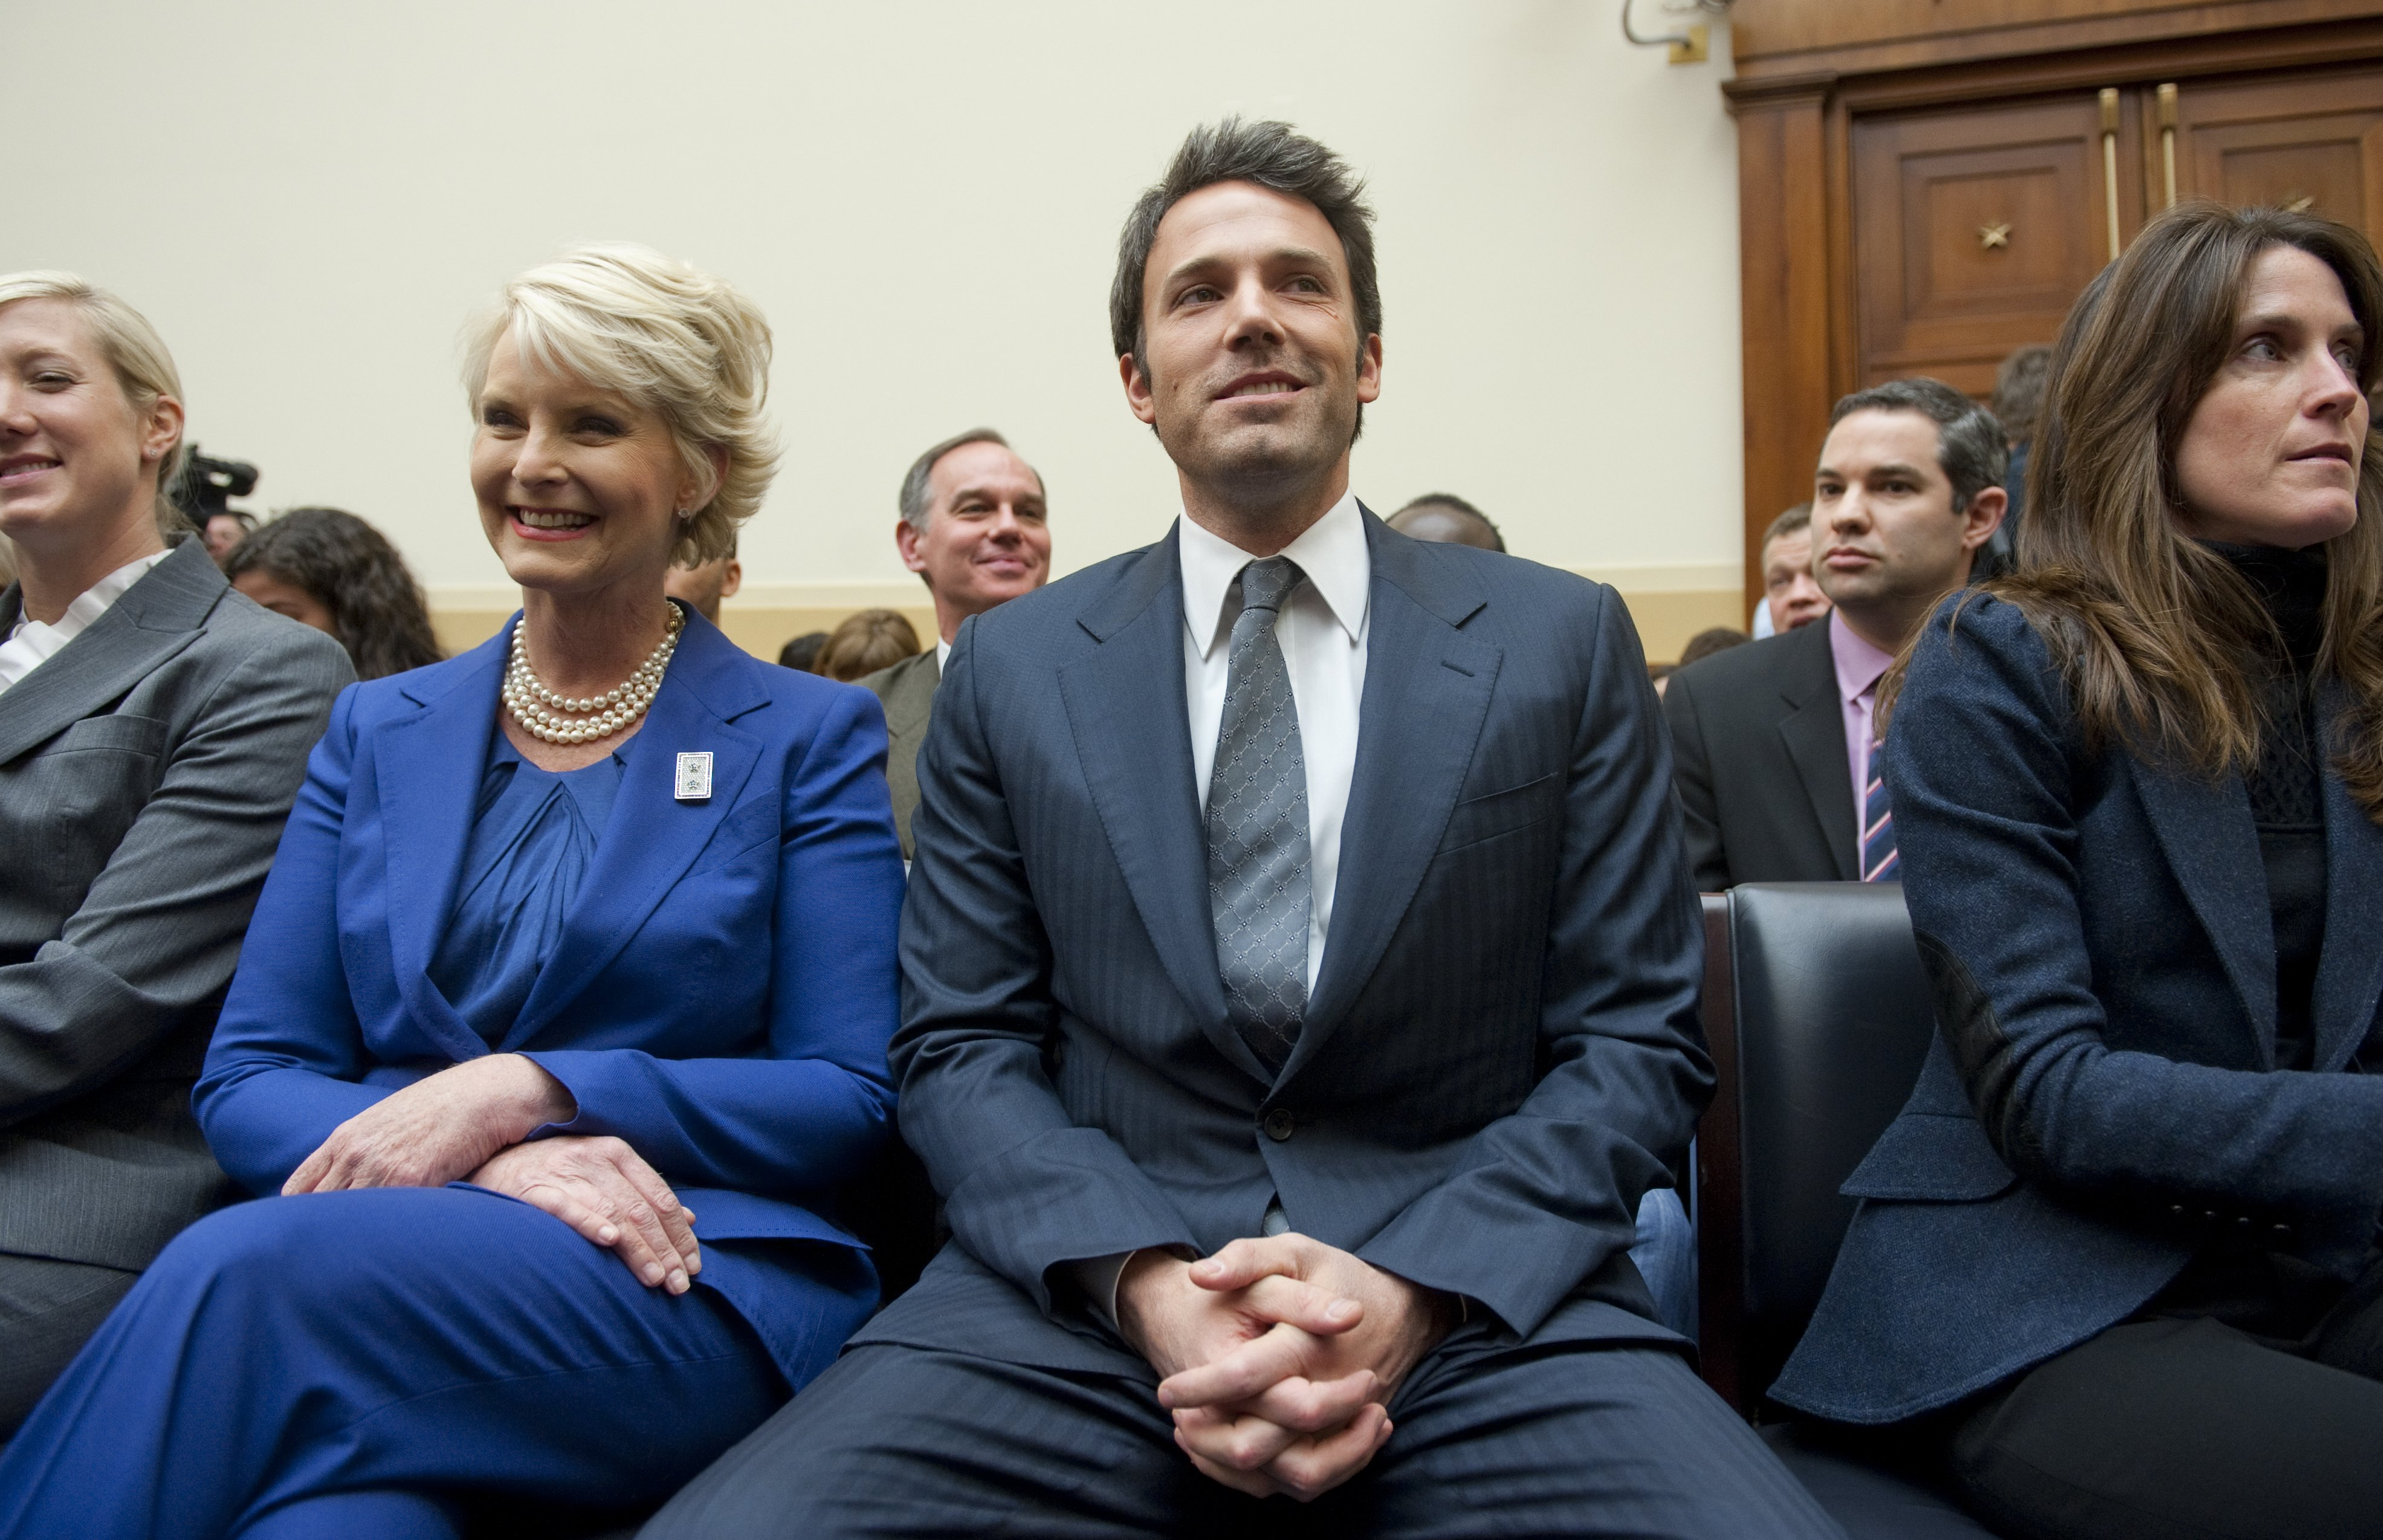 Ben Affleck and Cindy McCain: Capitol Hill's odd couple